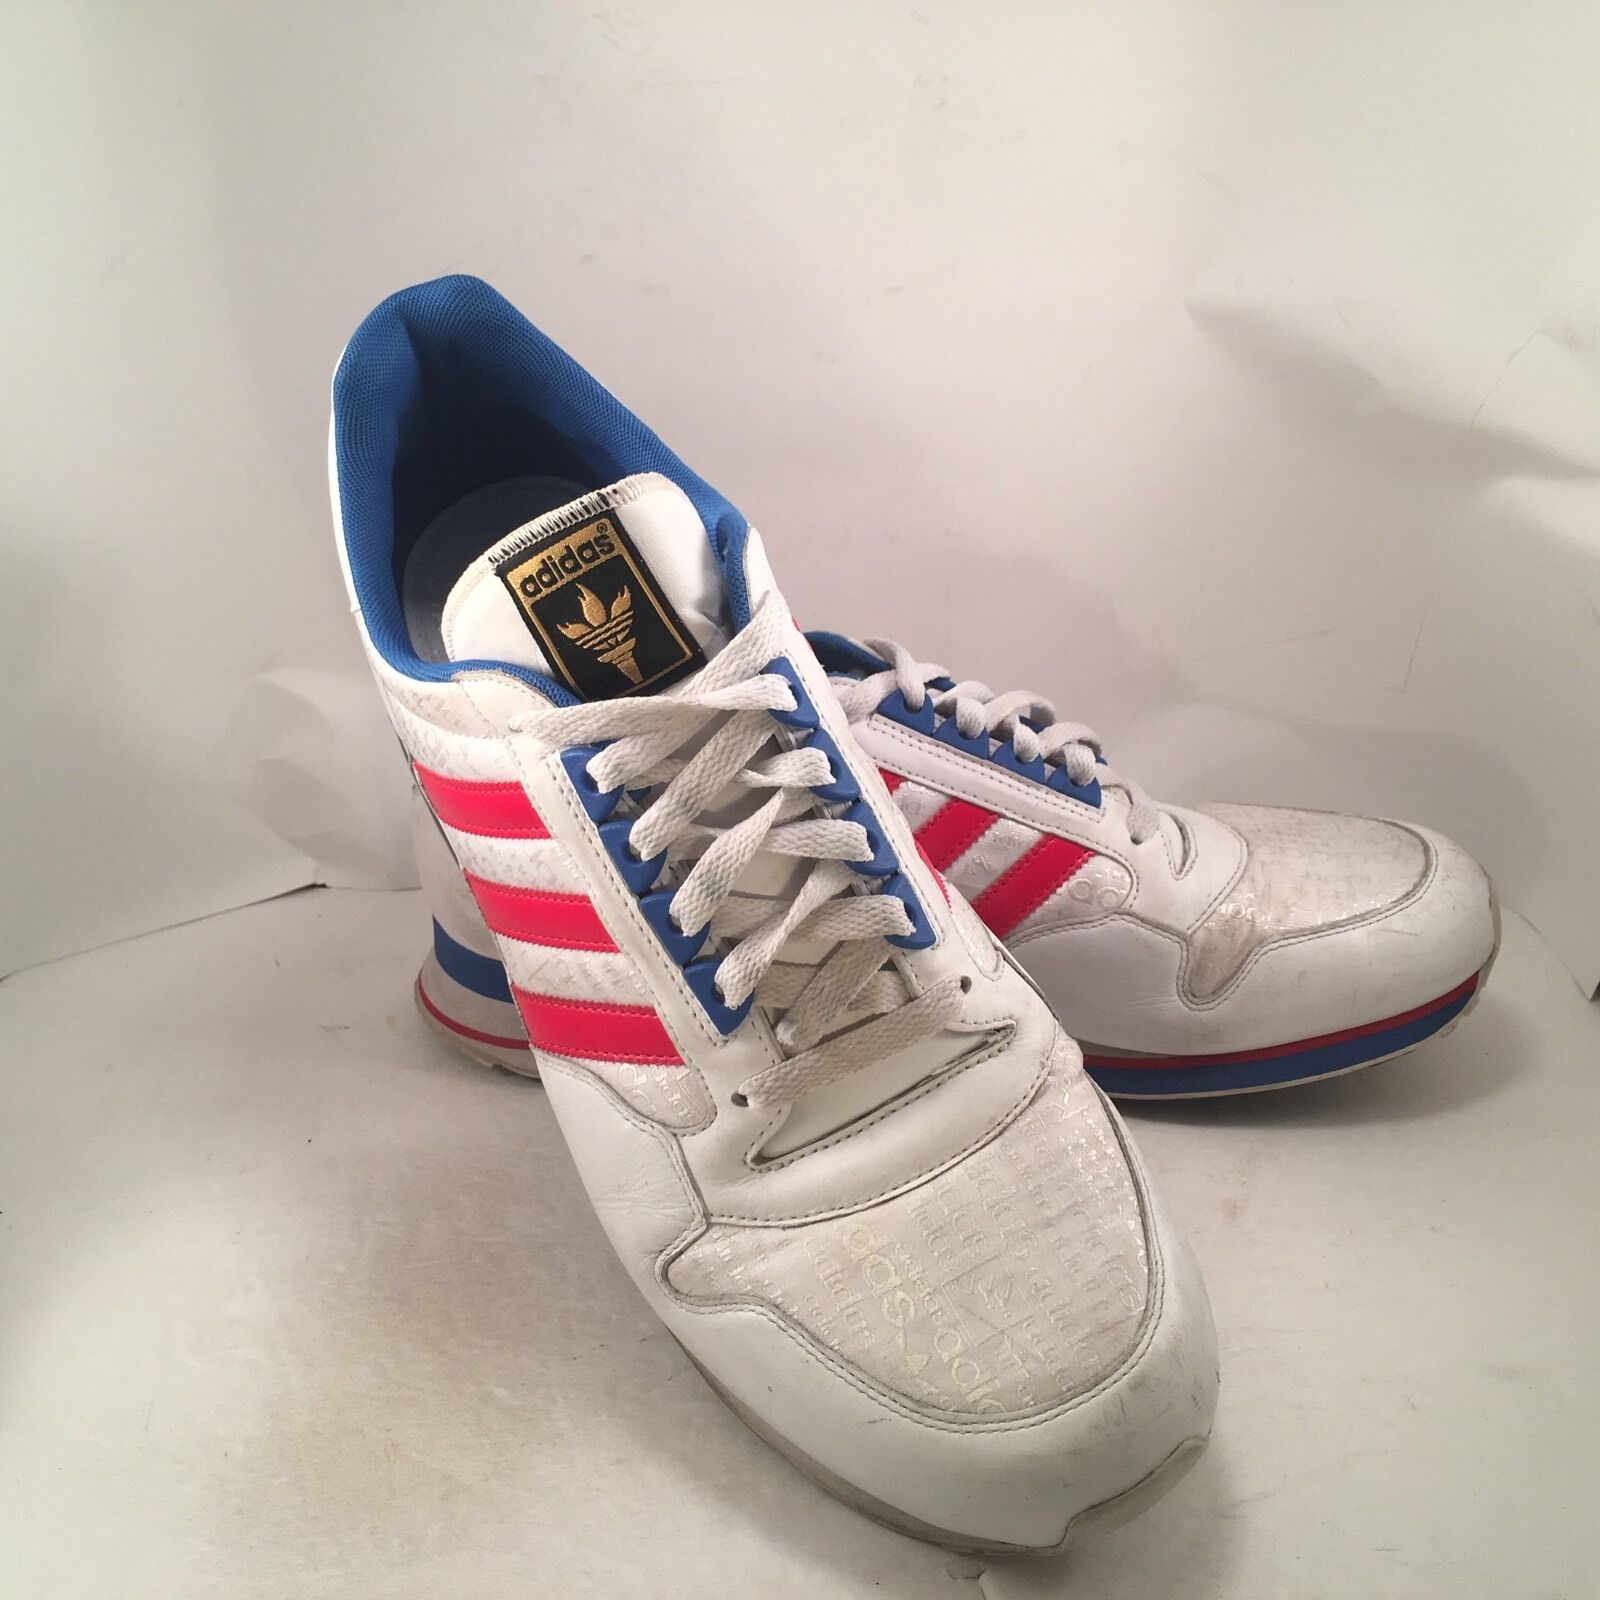 Rare adidas Munich 72 Olympics Commerative Shoes 2007 US Comfortable